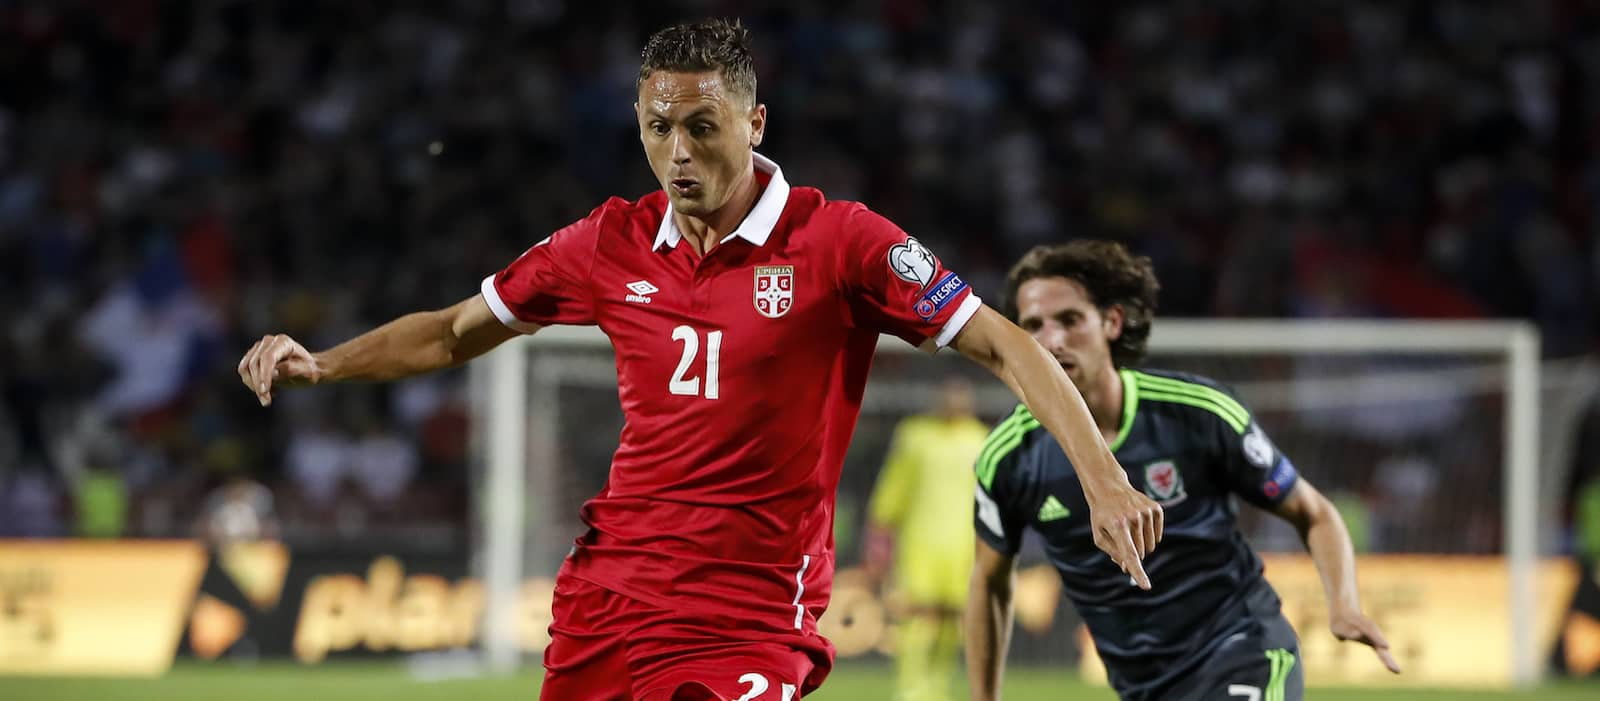 Guardian: Manchester United set to sign Nemanja Matic for £40m